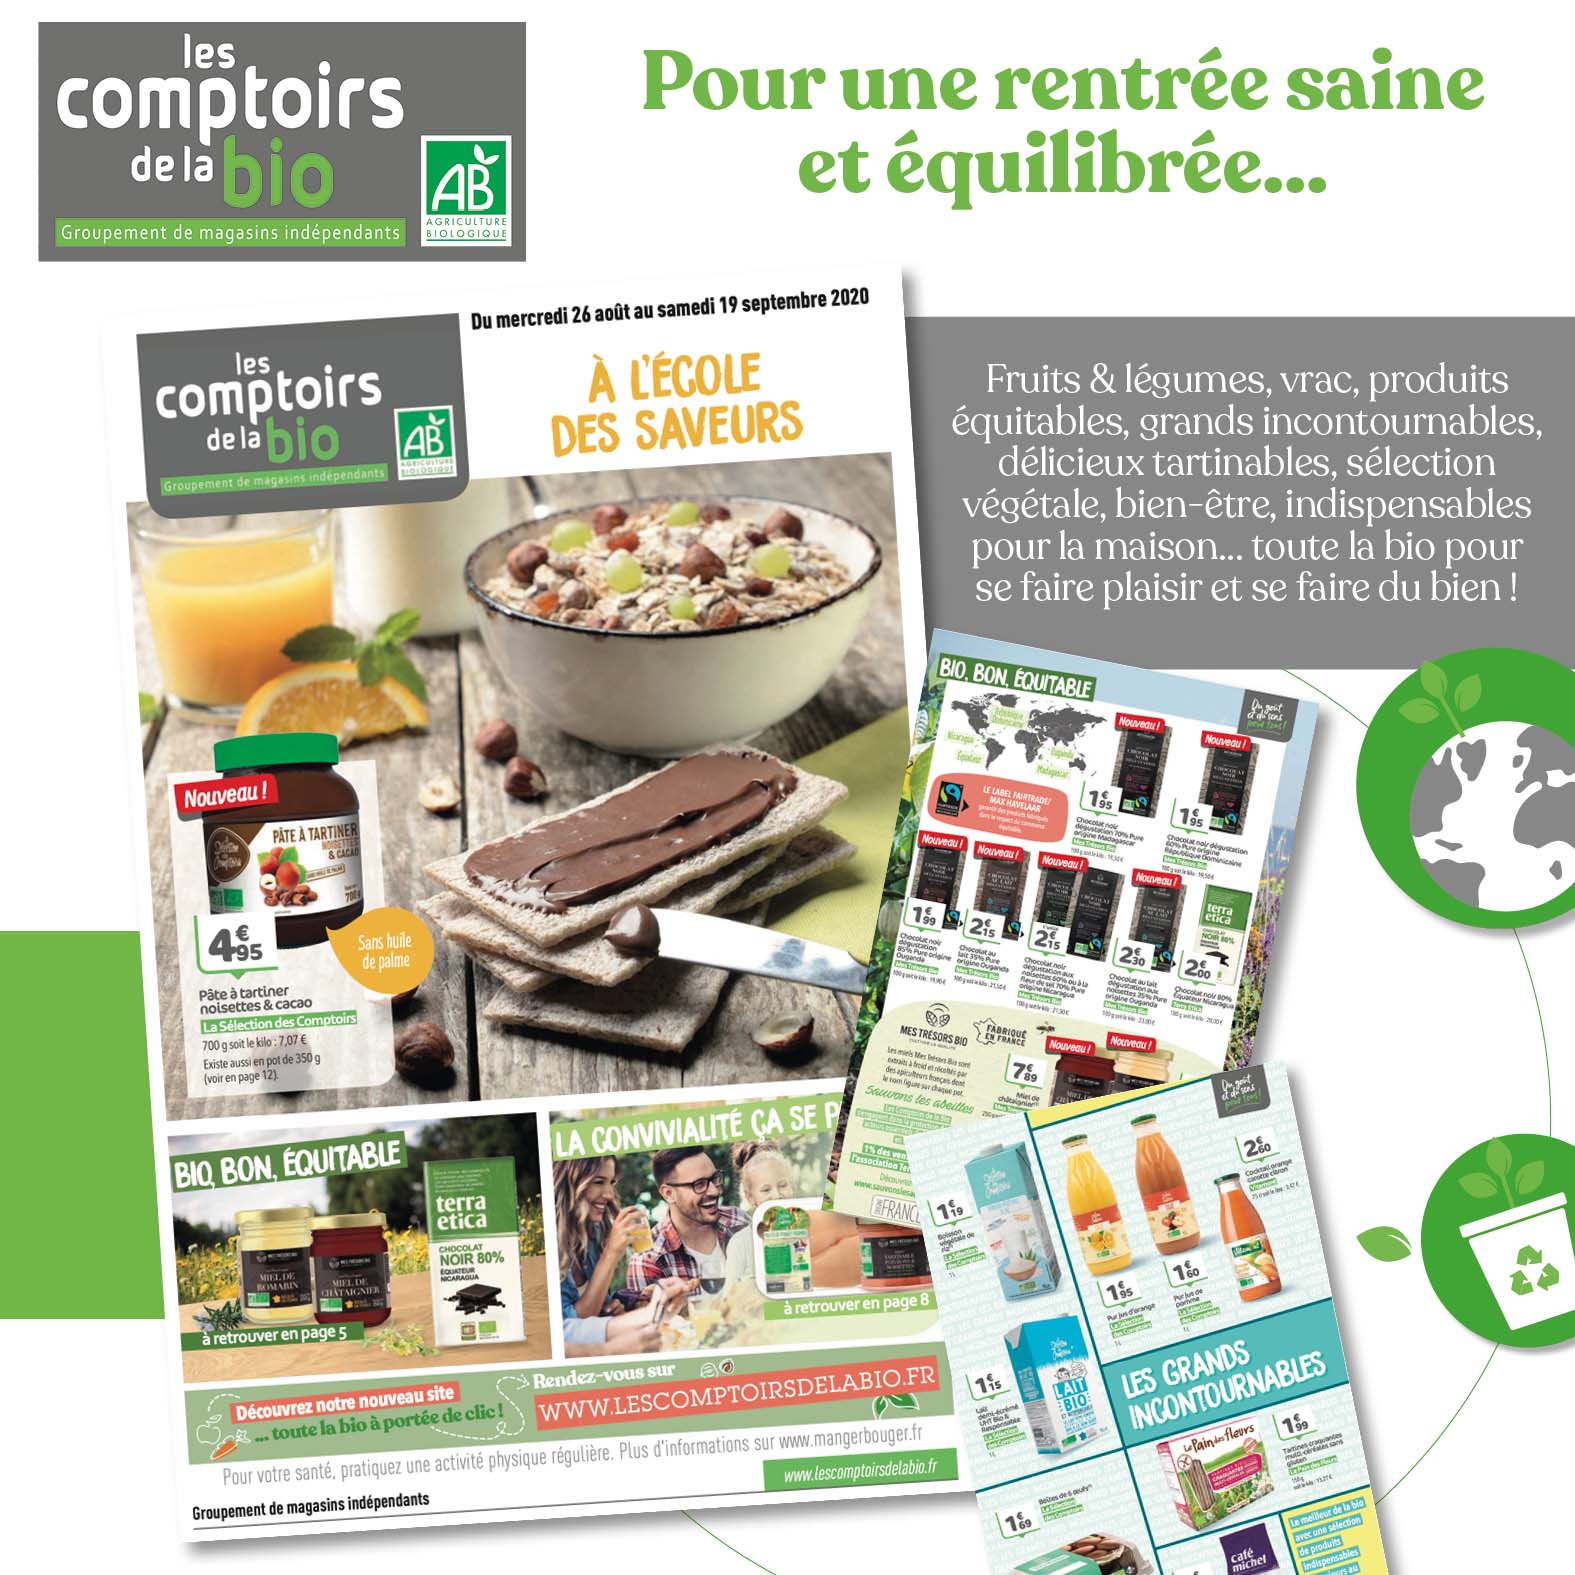 Rentree lcb annonce 16p